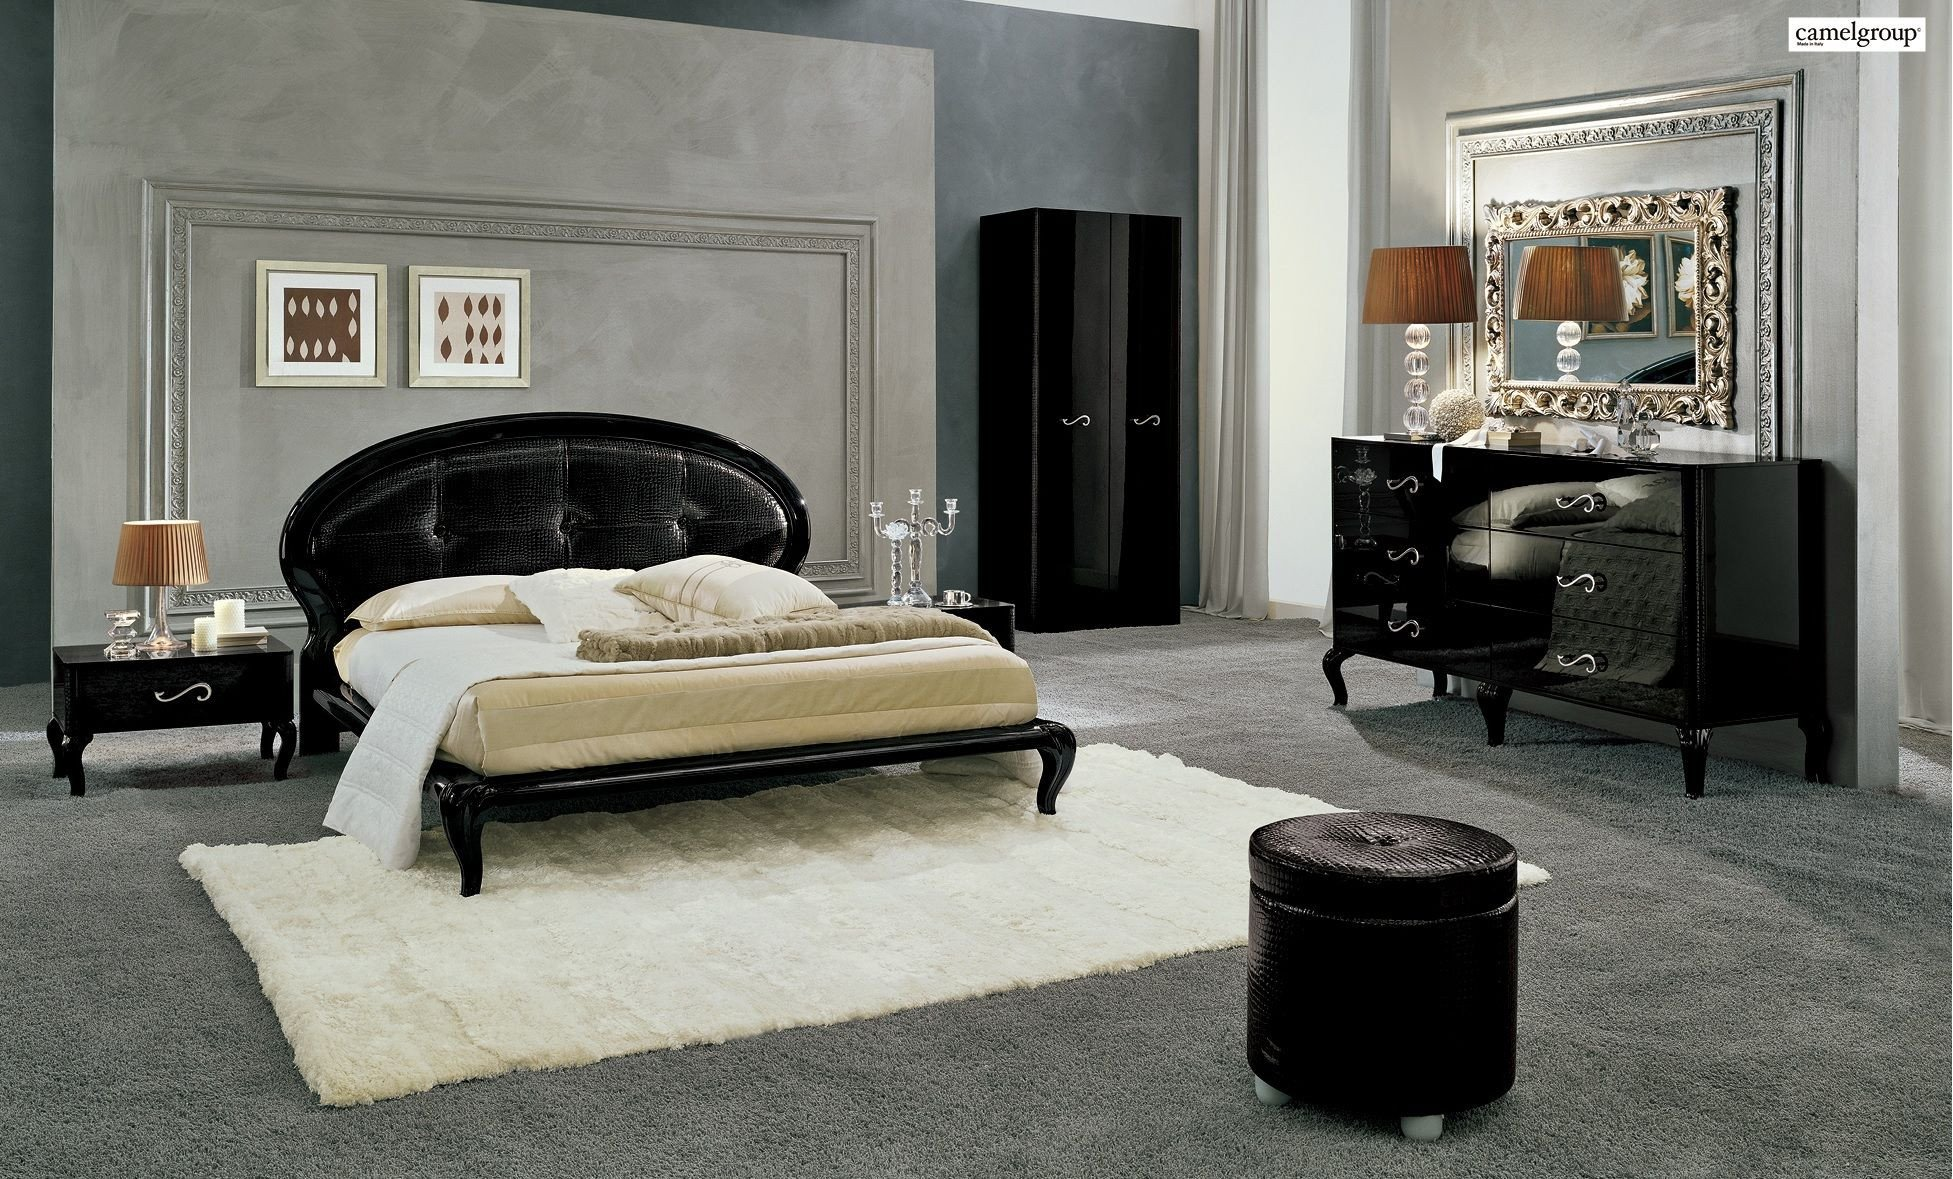 White Lacquer Bedroom Furniture Luxury Magic Bedroom Set In Black Lacquer Finish by Camelgroup